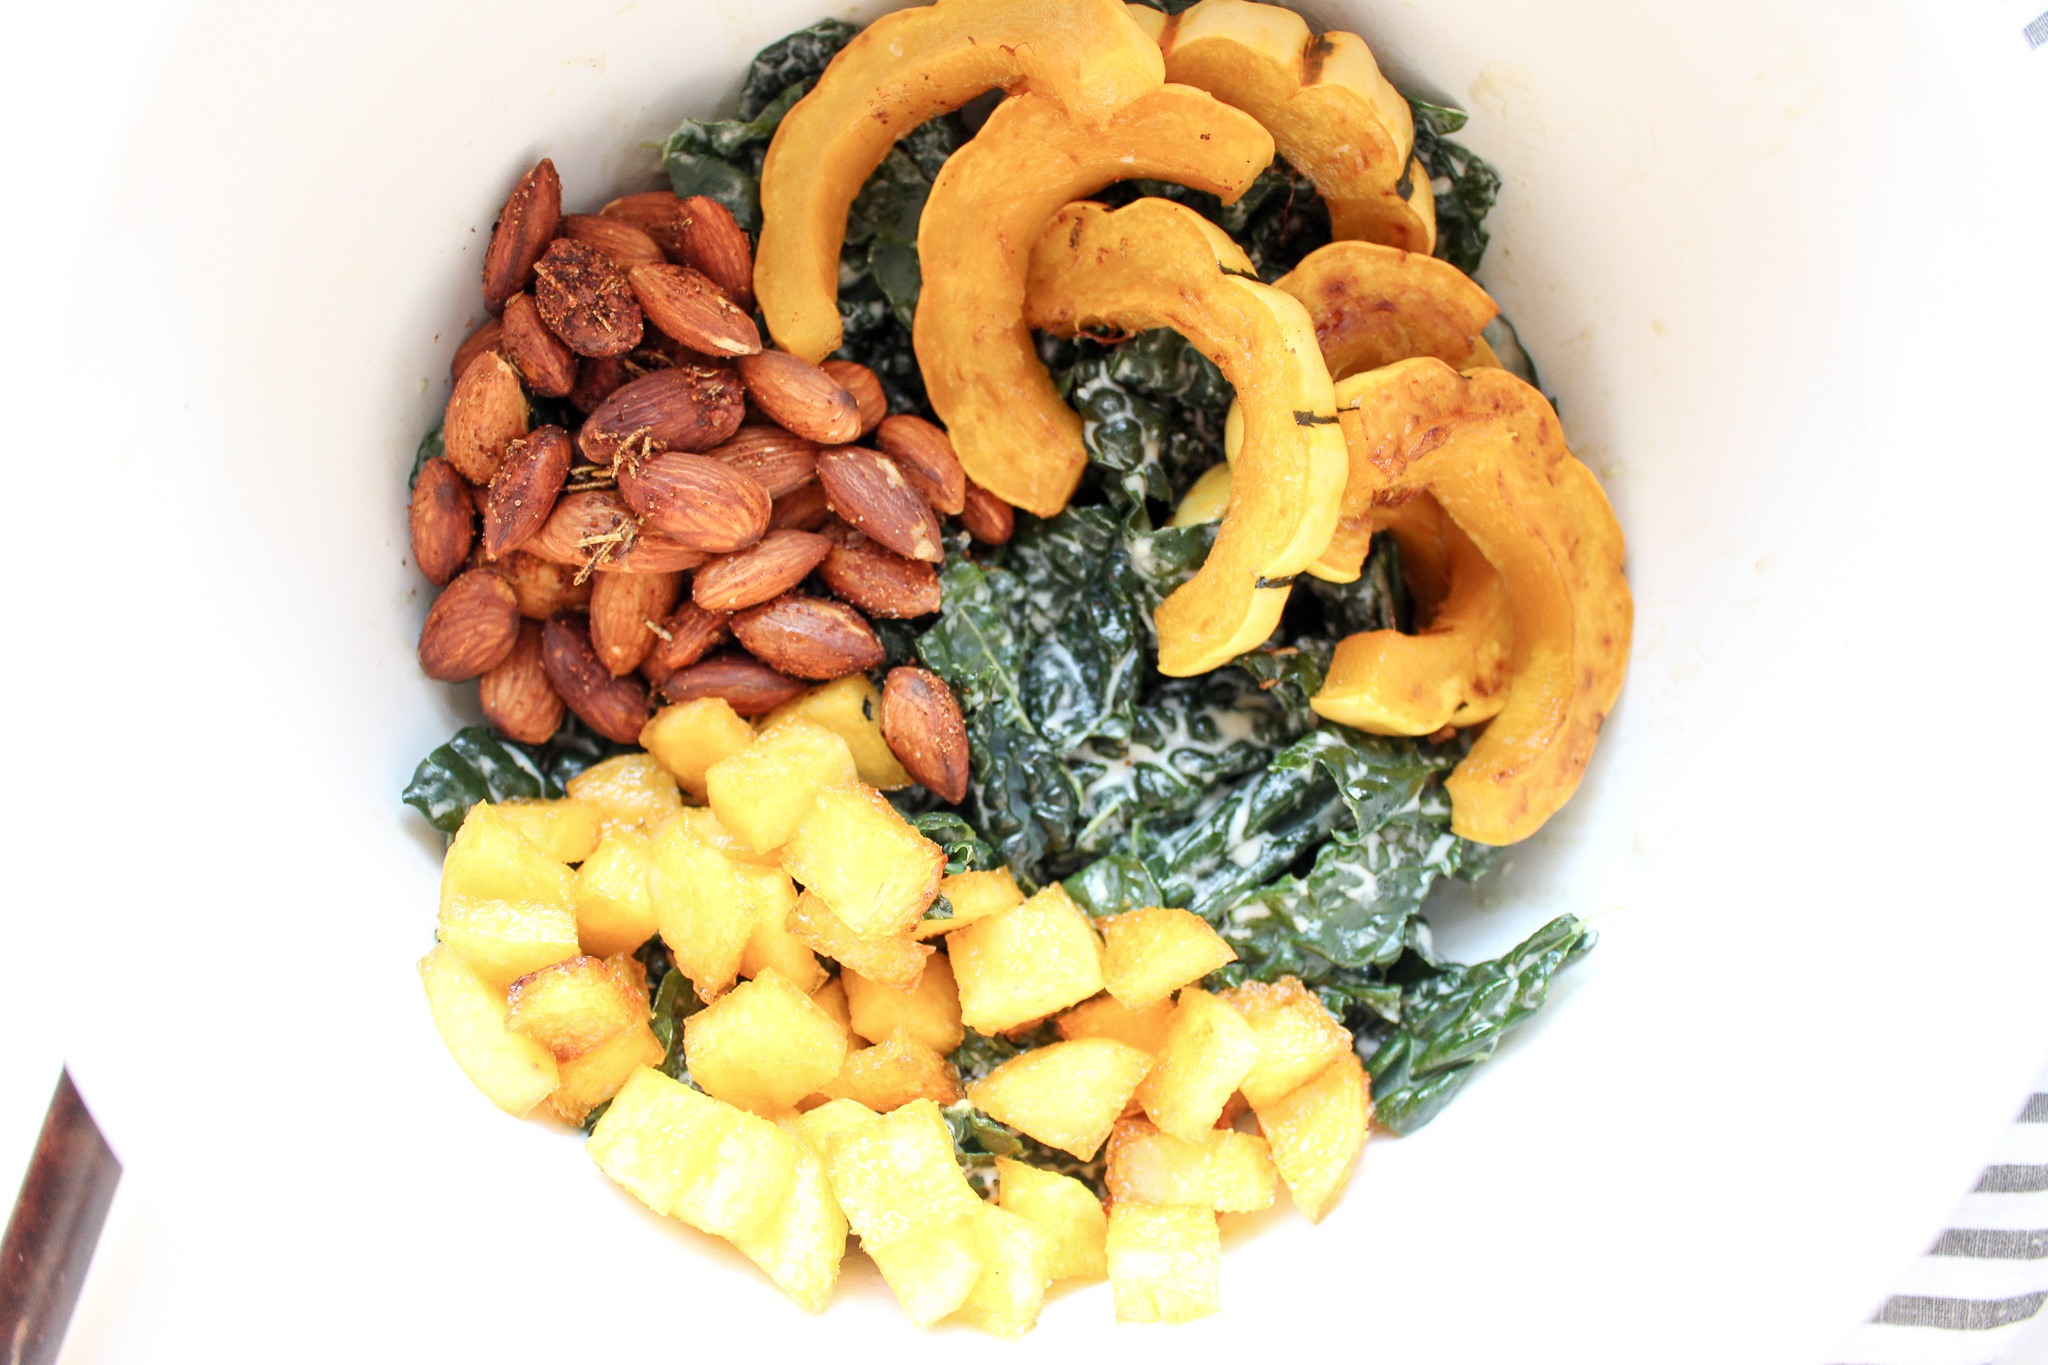 Squash, polenta, and kale Caesar salad | Me & The Moose. Adults and kids alike love this healthy and hearty salad. It combines roasted squash, crispy polenta croutons, roasted spiced almonds, dried cranberries, and a tahini Caesar dressing for a regular weeknight dinner or a special holiday occasion. #meandthemoose #thanksgivingsalad #salad #healthycaesar #delicatasquash #polentacroutons #glutenfree #dairyfree